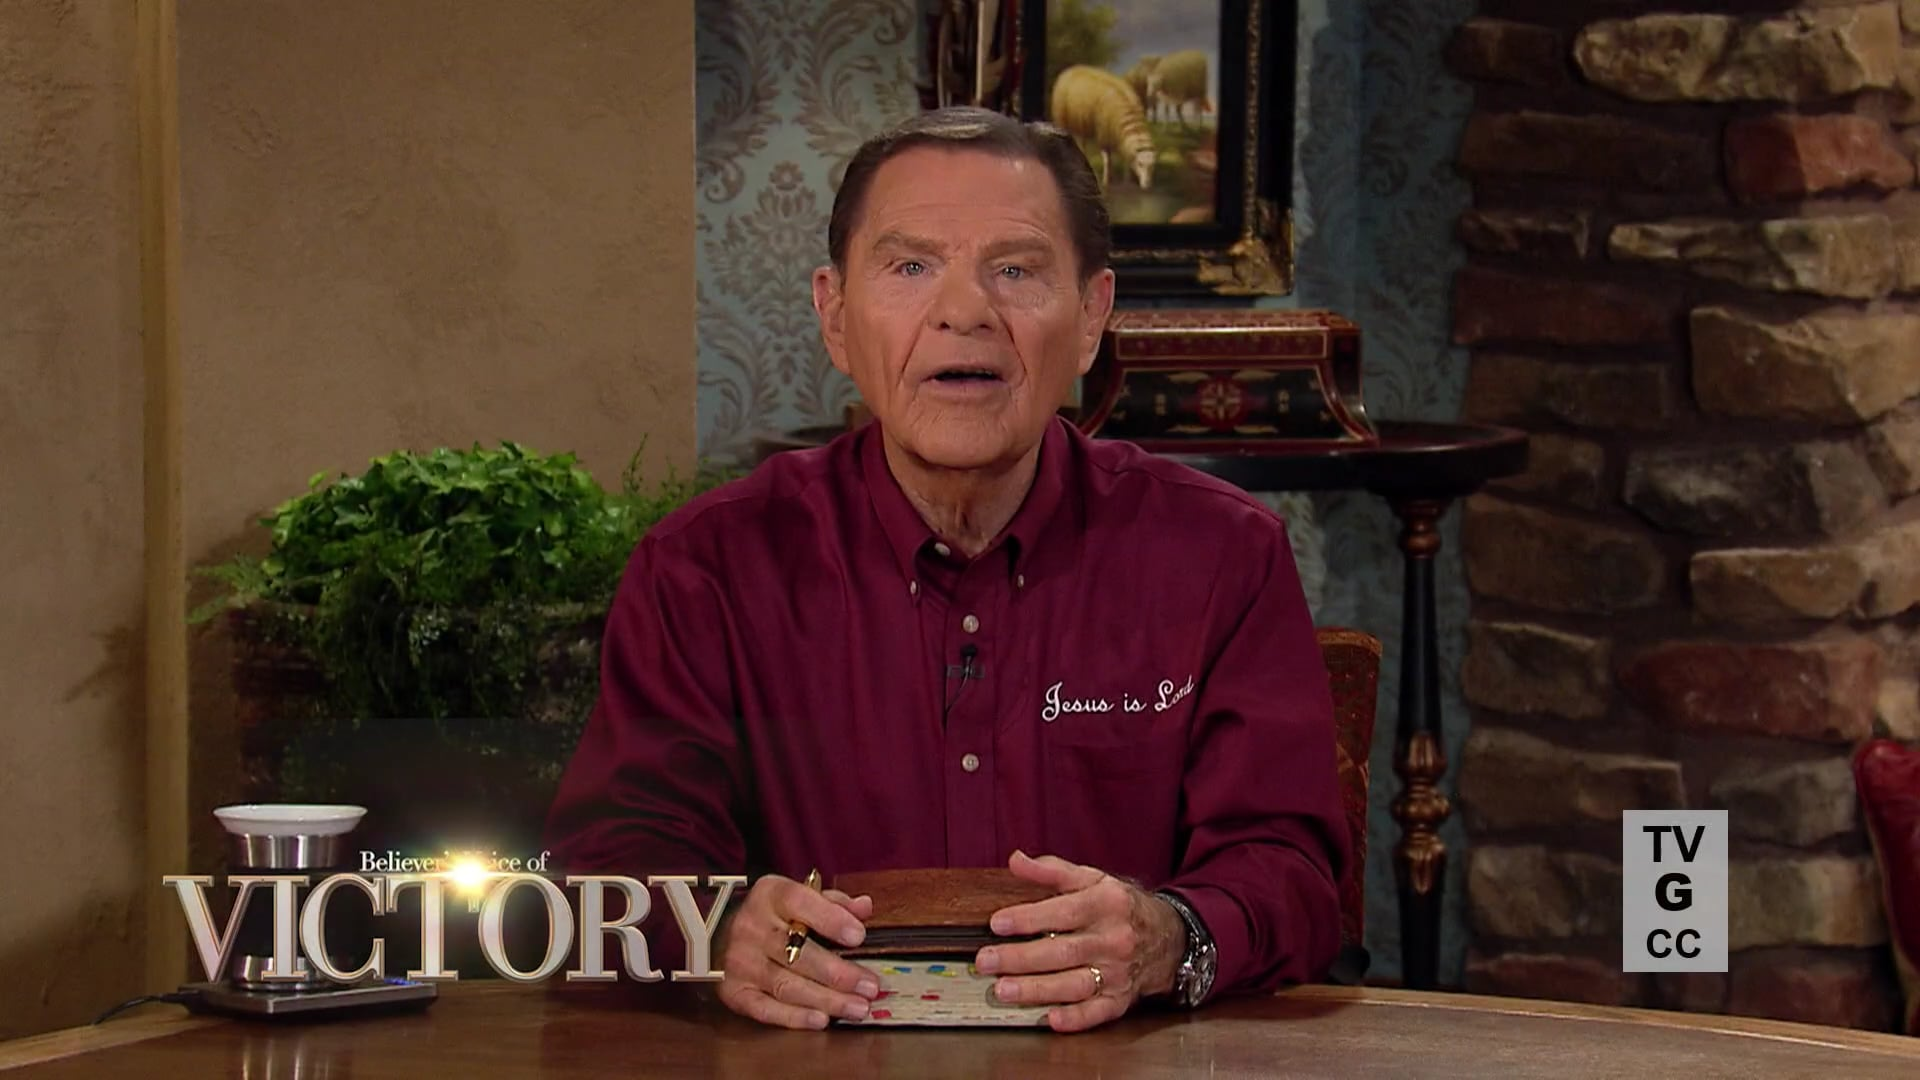 Obedience to God's WORD not only changes your situation, but it impacts the world around you. Today on Believer's Voice of Victory, Kenneth Copeland teaches from the book of James--God's solution to stop strife and pull us together in peace and unity.